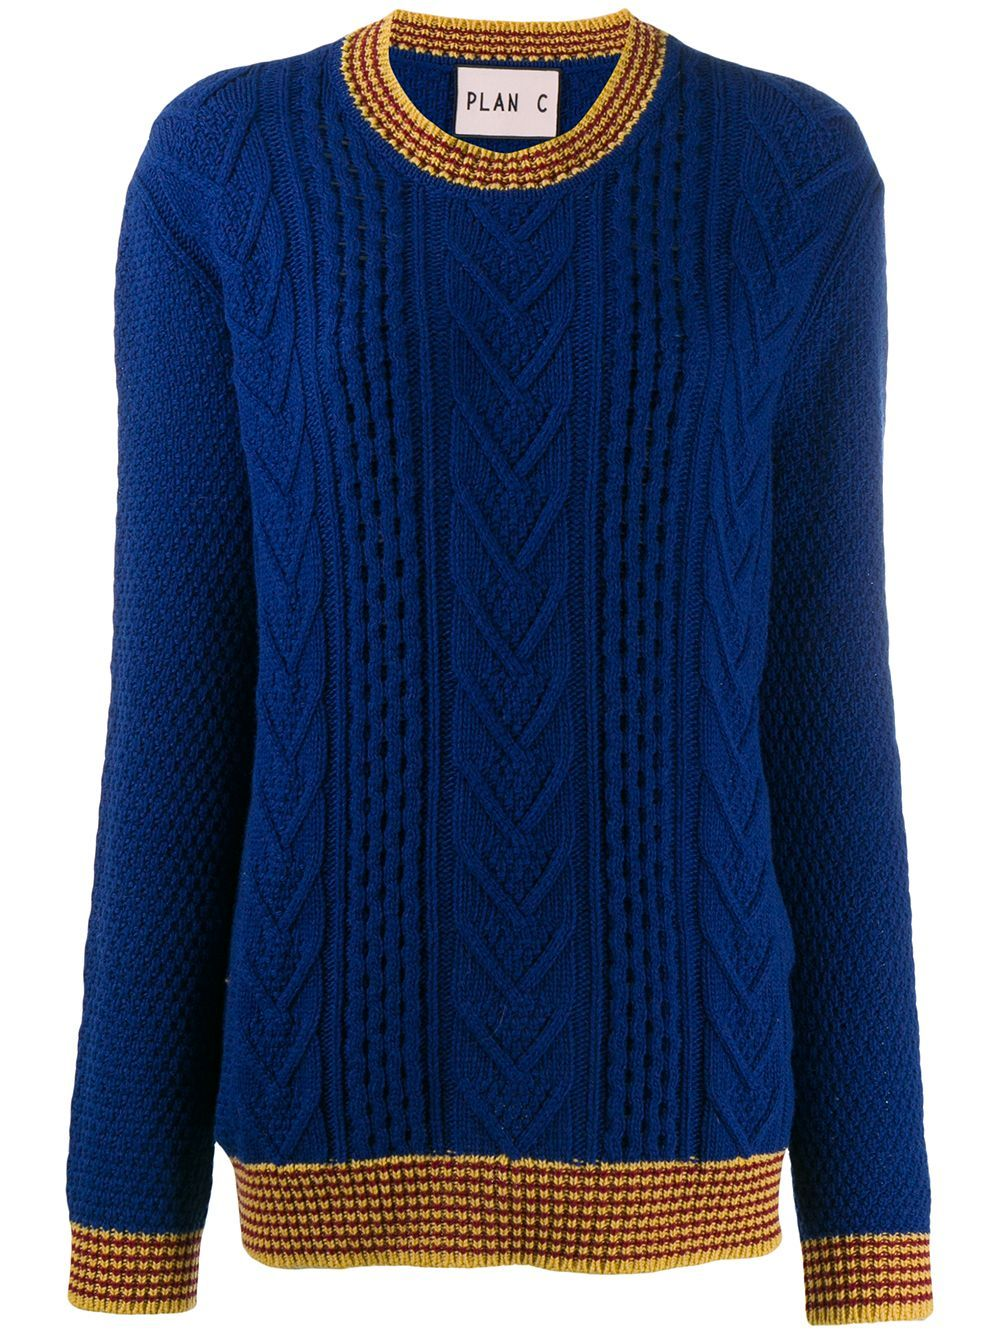 Plan C cable knit jumper - Blue